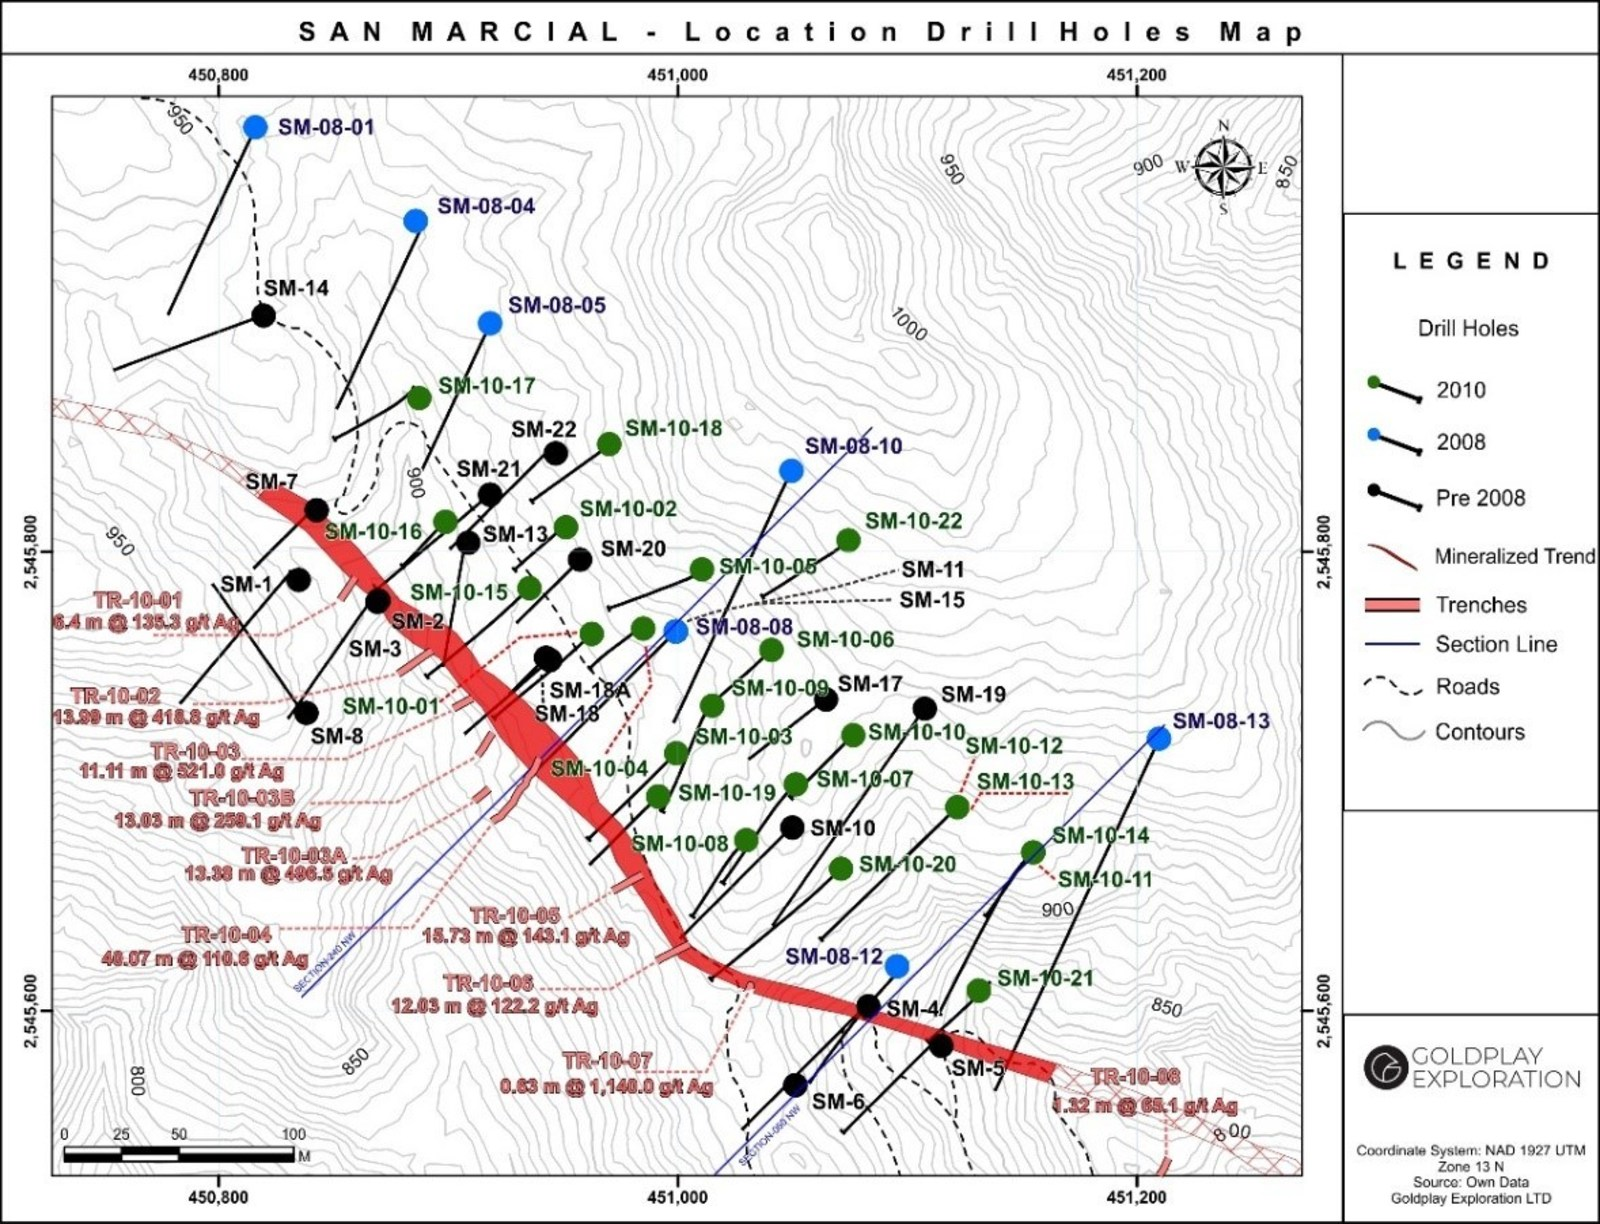 Figure 1: Drill Hole Location Map San Marcial Project